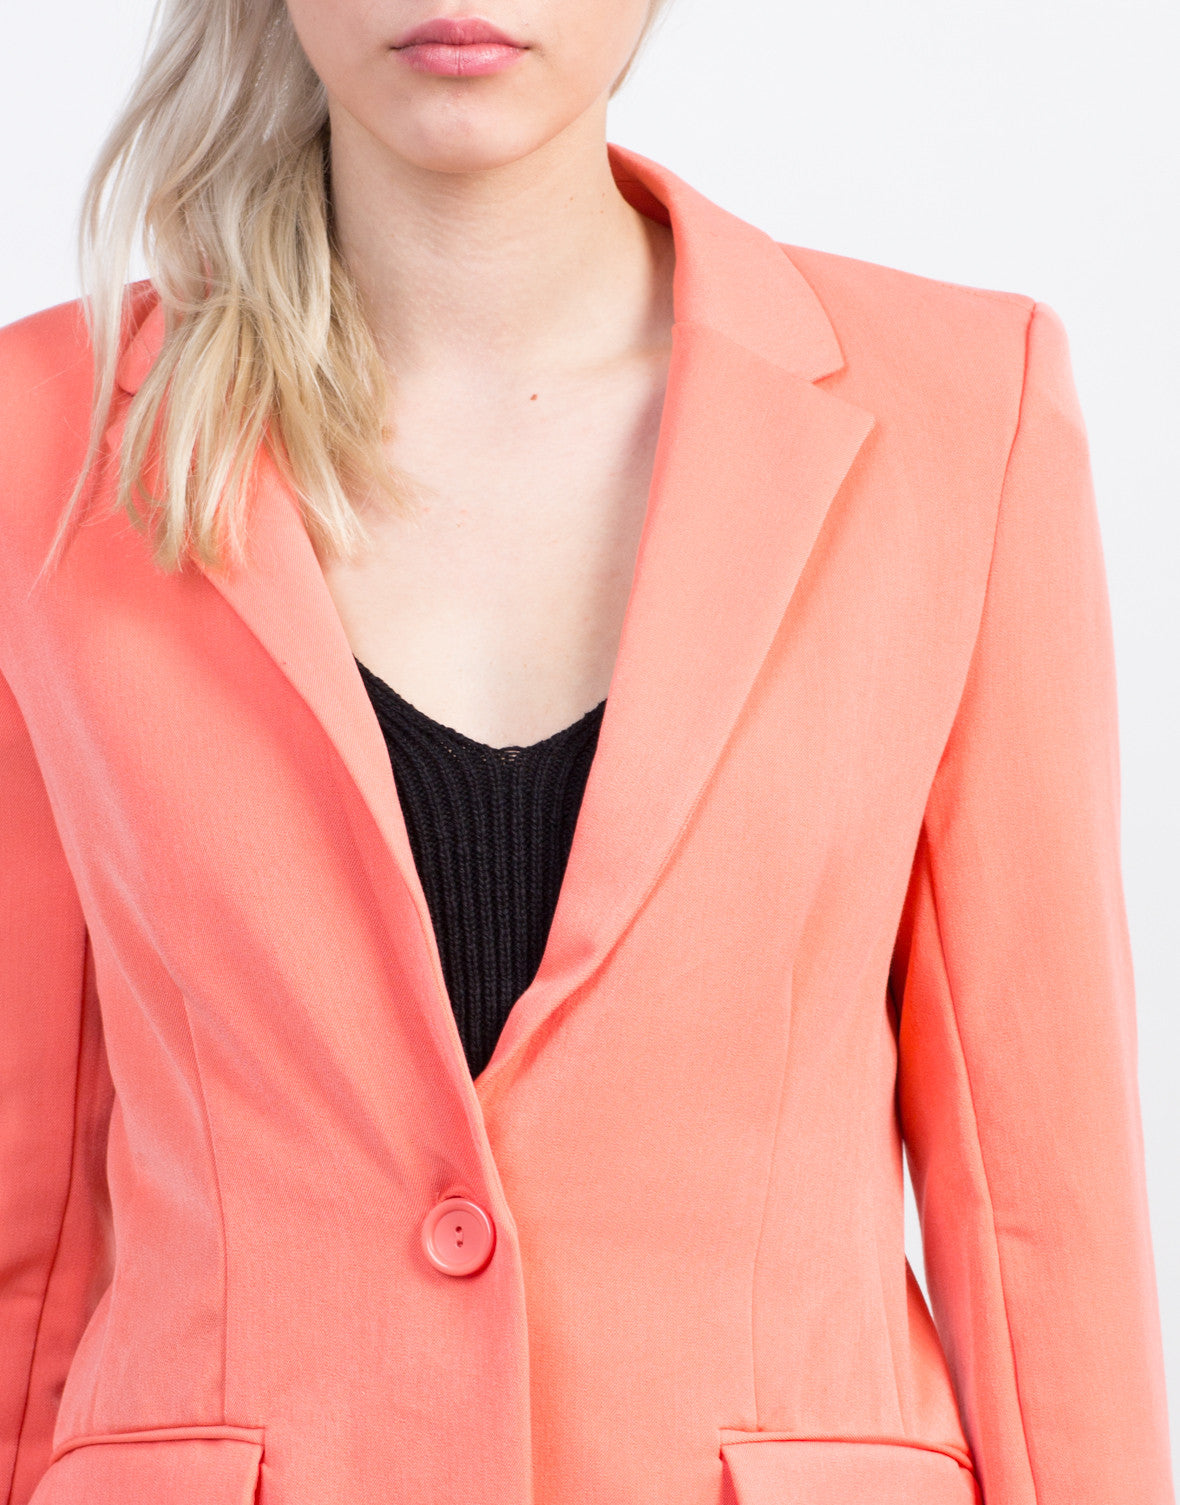 Detail of Boyfriend Blazer